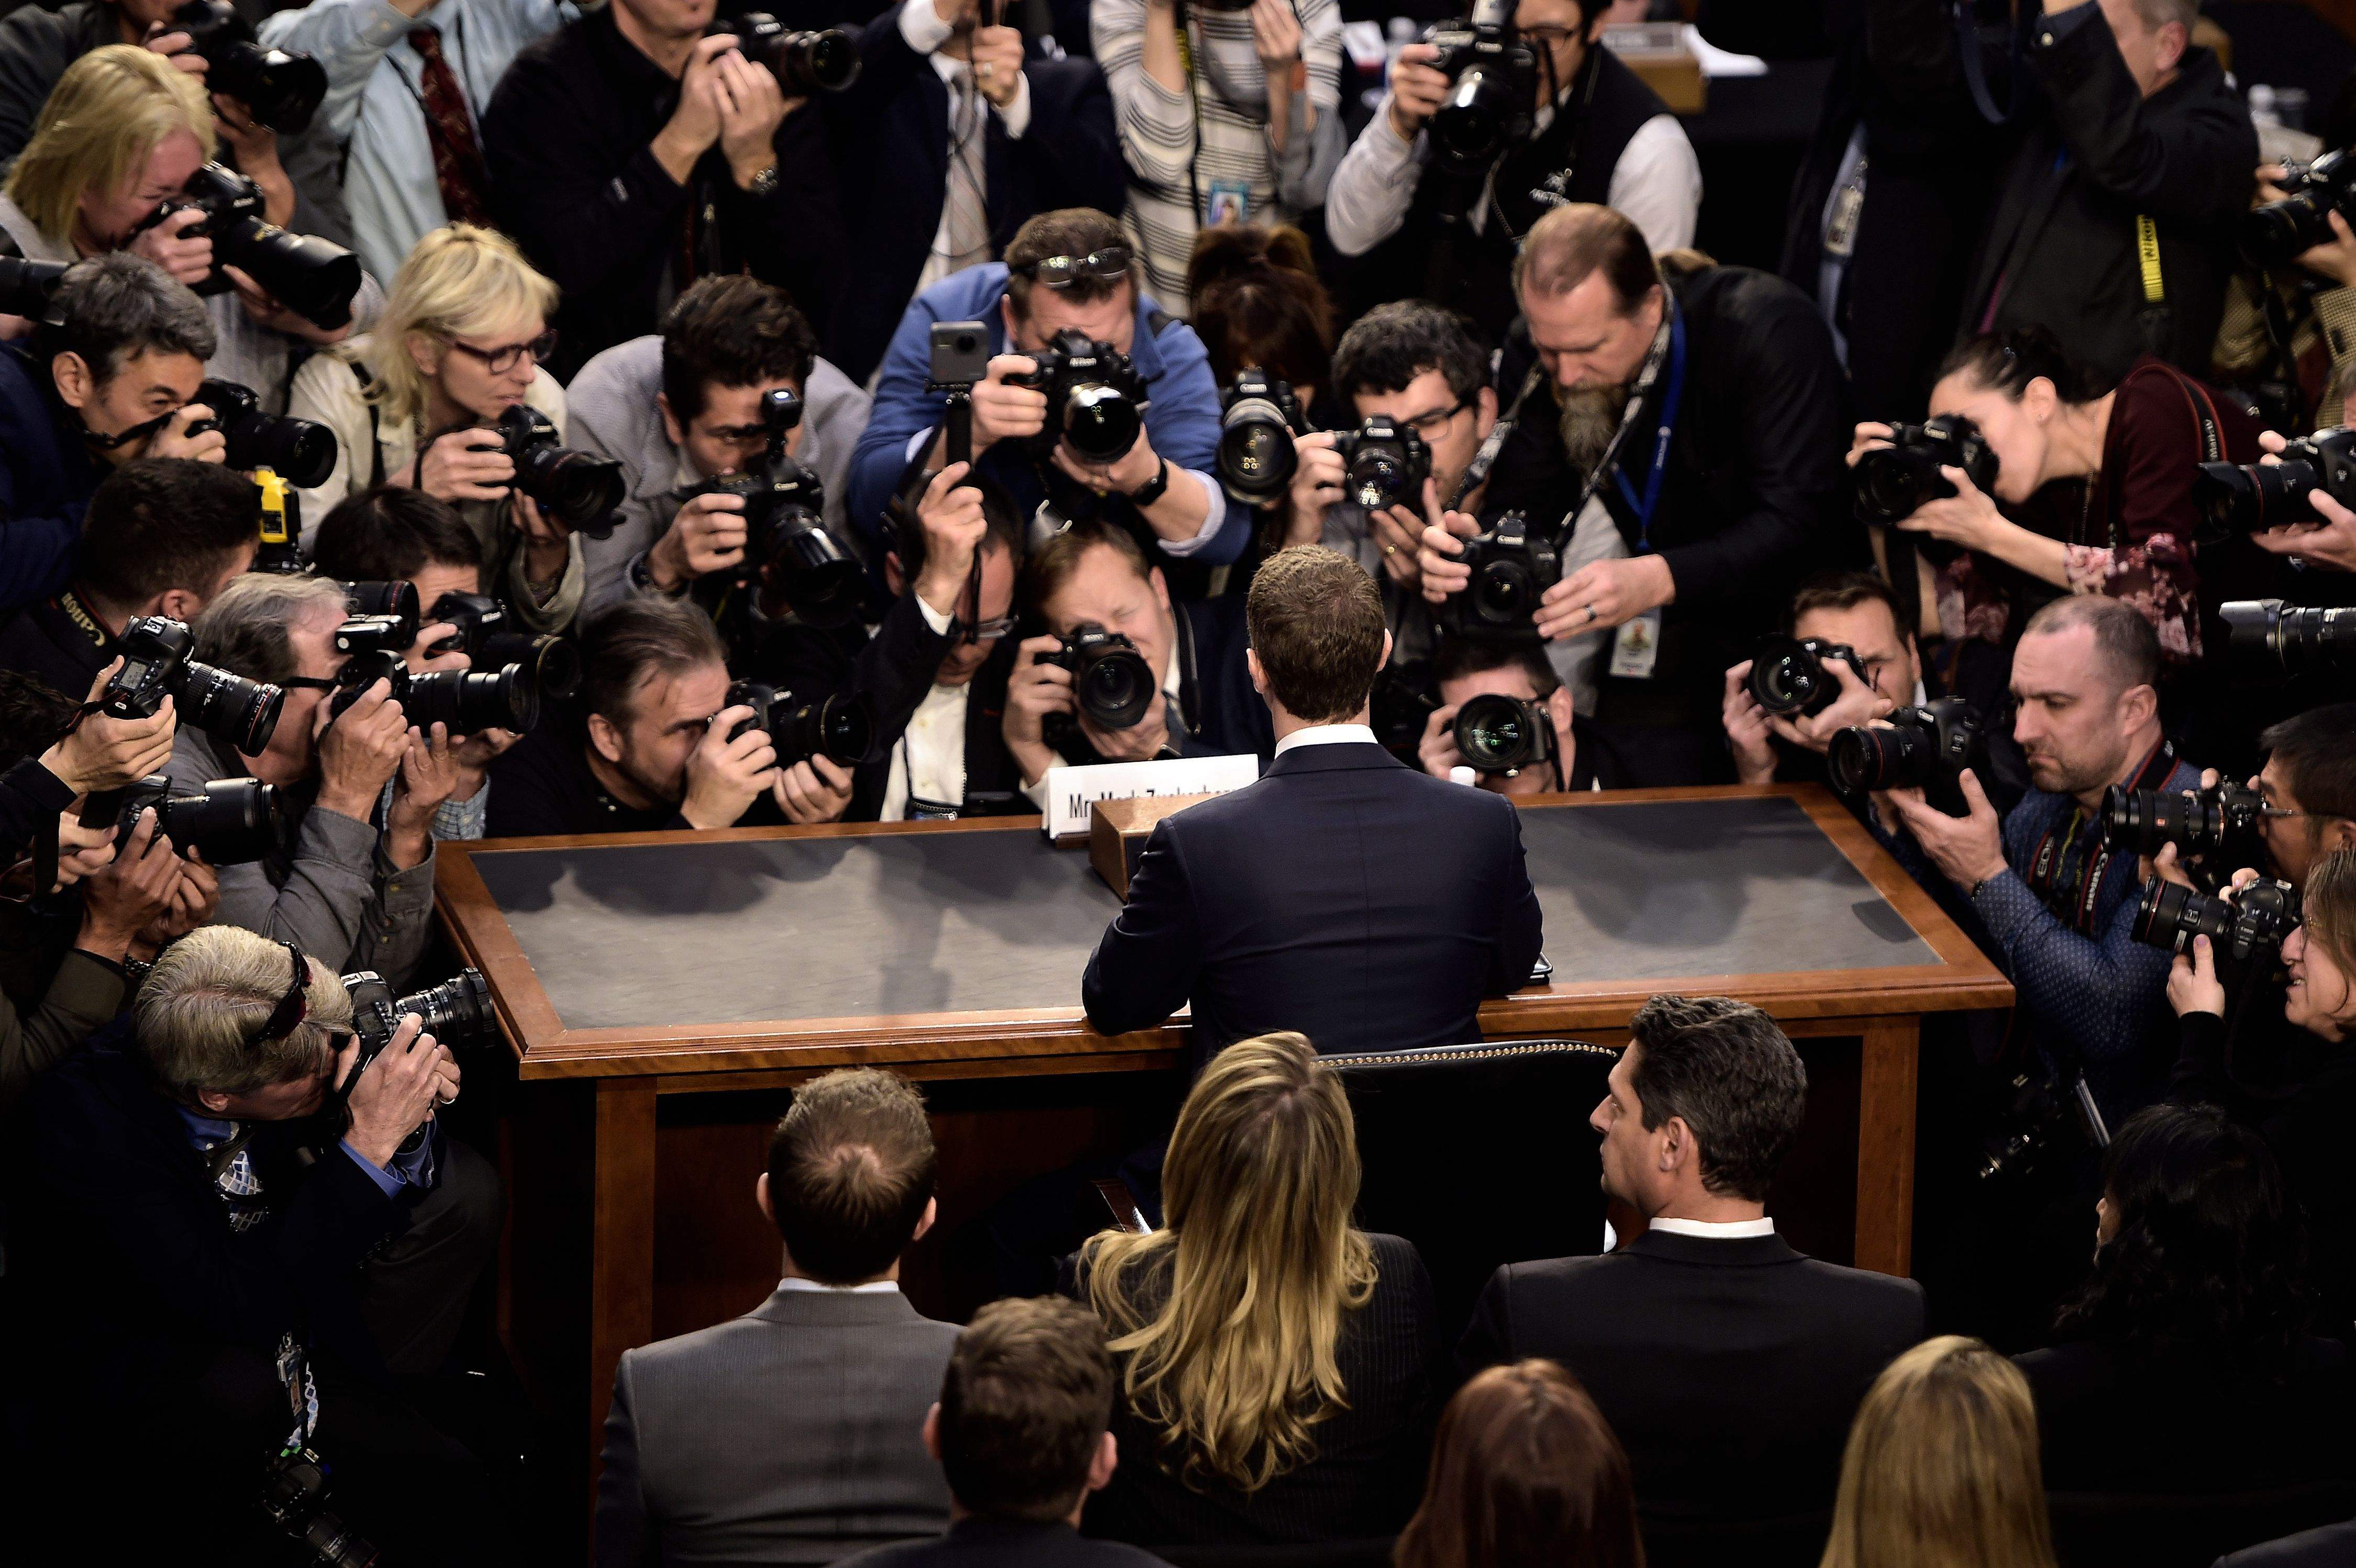 TOPSHOT - Facebook CEO Mark Zuckerberg arrives to testify before a joint hearing of the US Senate Commerce, Science and Transportation Committee and Senate Judiciary Committee on Capitol Hill, April 10, 2018 in Washington, DC. Zuckerberg, making his first formal appearance at a Congressional hearing, seeks to allay widespread fears ignited by the leaking of private data on tens of millions of users to British firm Cambridge Analytica working on Donald Trump's 2016 presidential campaign. / AFP PHOTO / Brendan Smialowski (Photo credit should read BRENDAN SMIALOWSKI/AFP/Getty Images)